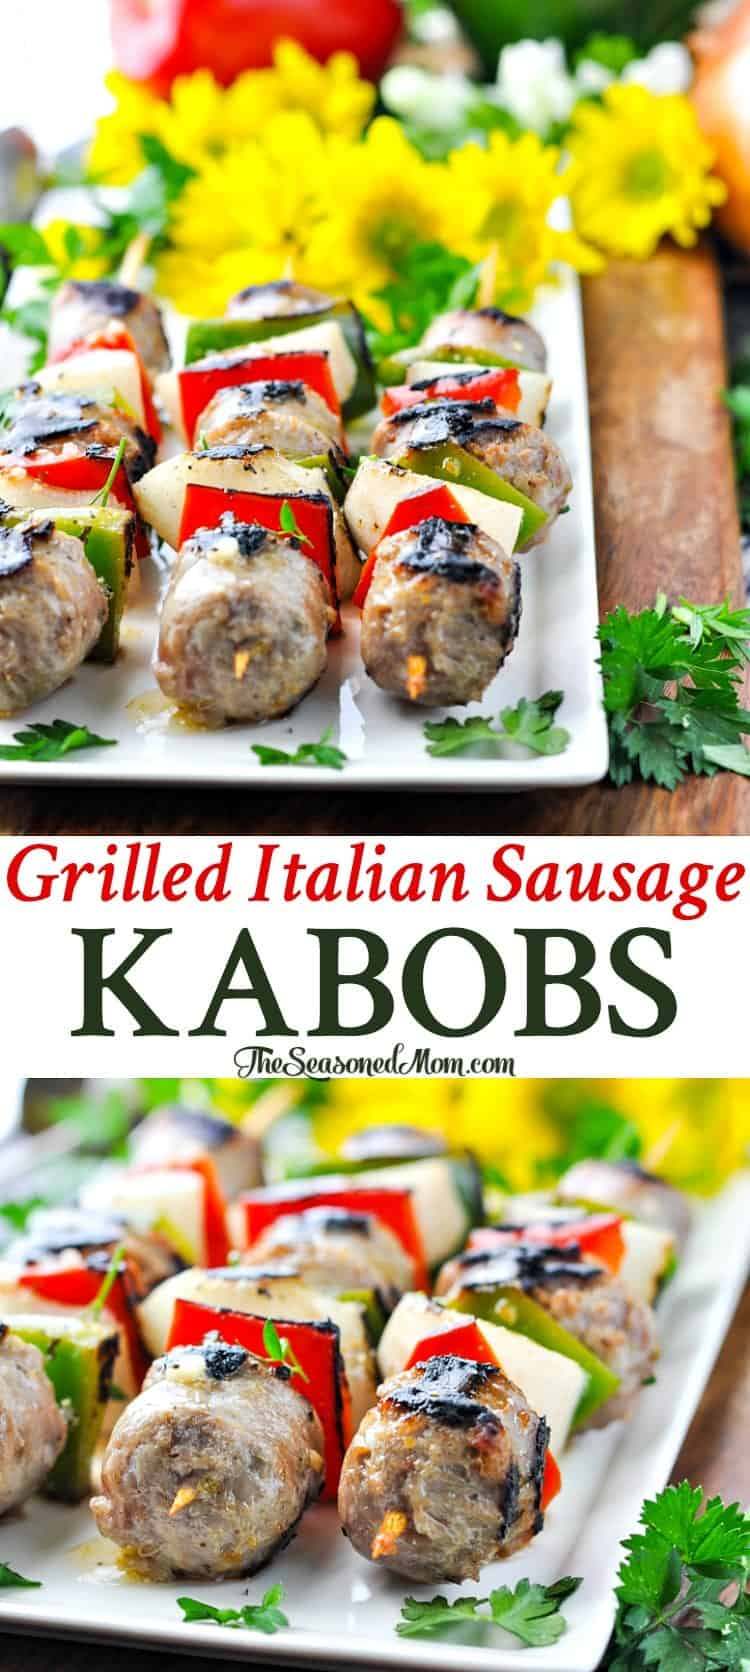 5 Ingredient Grilled Italian Sausage Kabobs | Italian Sausage Recipes | Sausage and Peppers | Easy Dinner Recipes | Dinner Ideas | Grilling Recipes | 5 Ingredients or Less Recipes